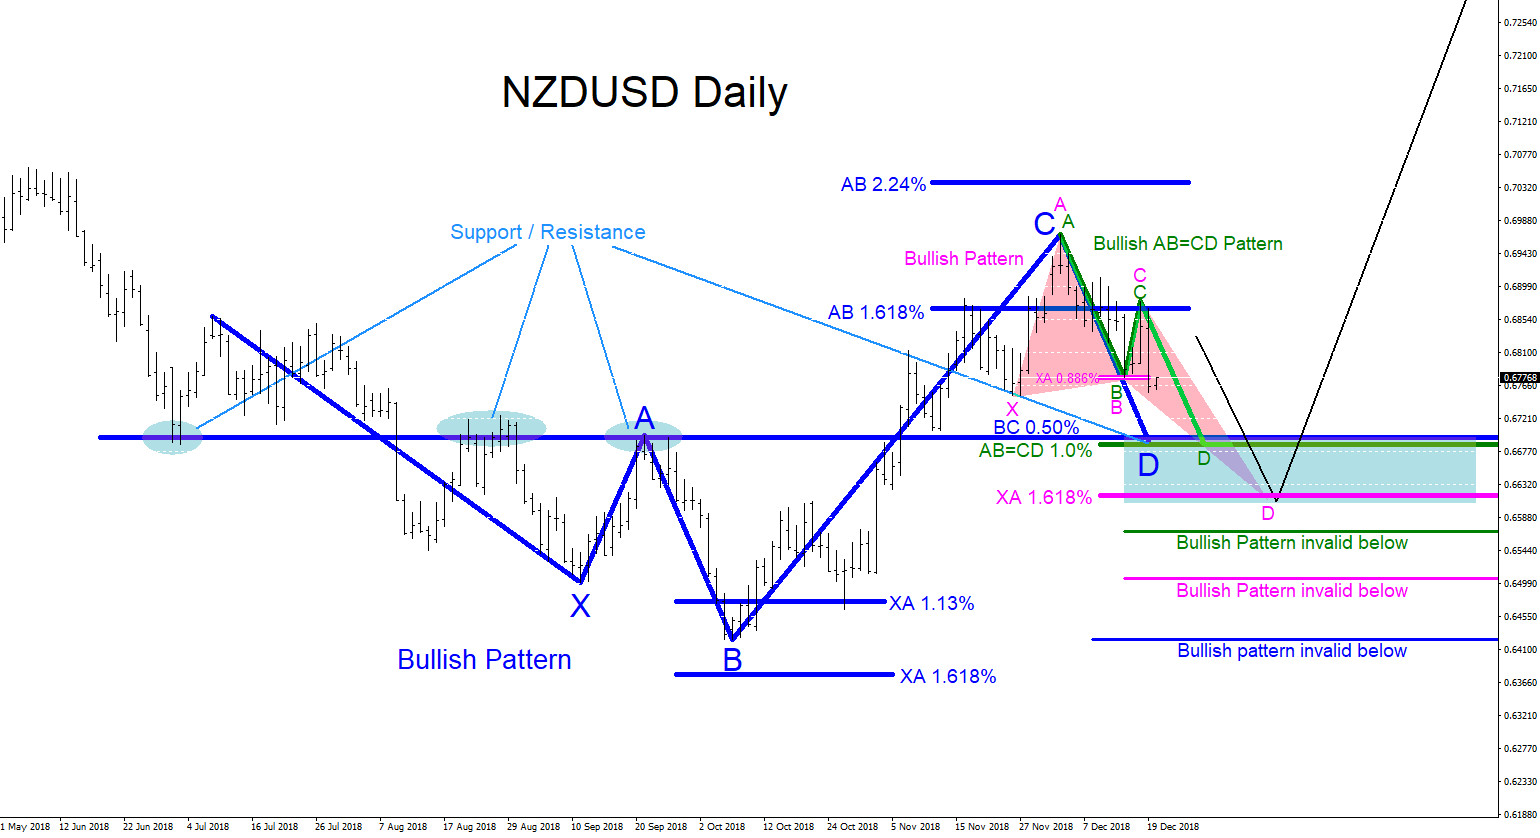 NZDUSD, patterns, technical analysis, bullish, forex, elliottwave, elliott wave